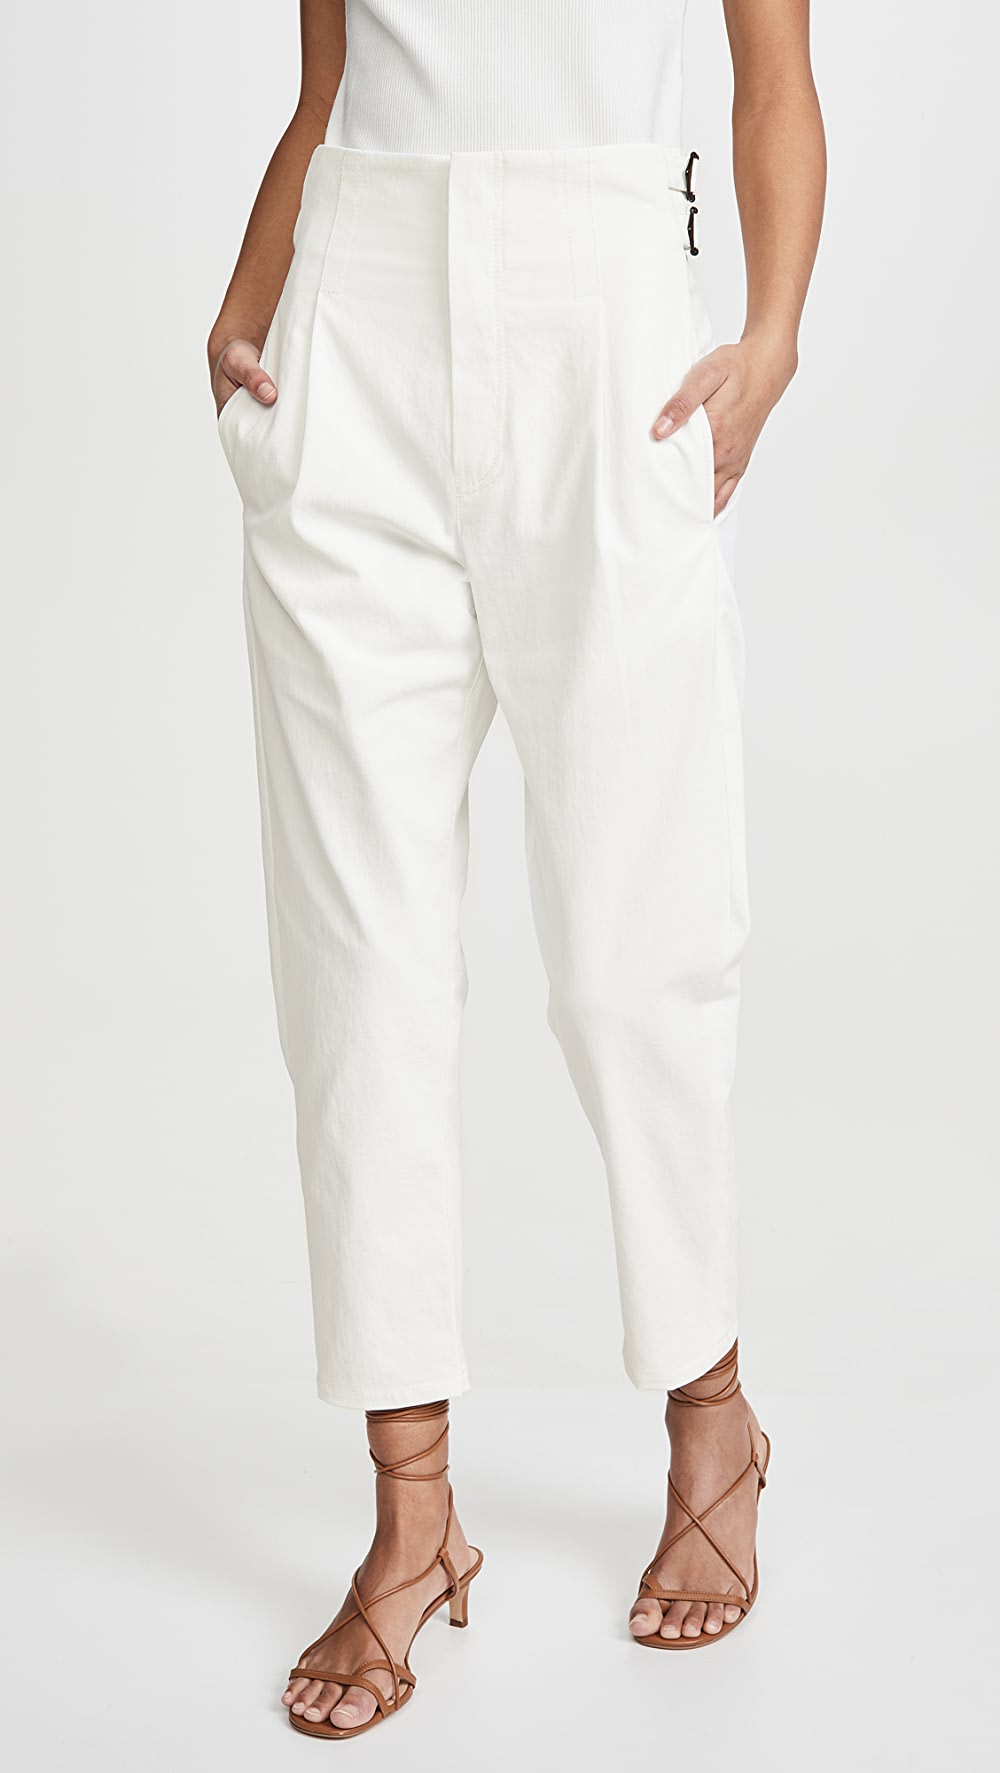 Logical Colovos - Buckle Pants Wide Selection;